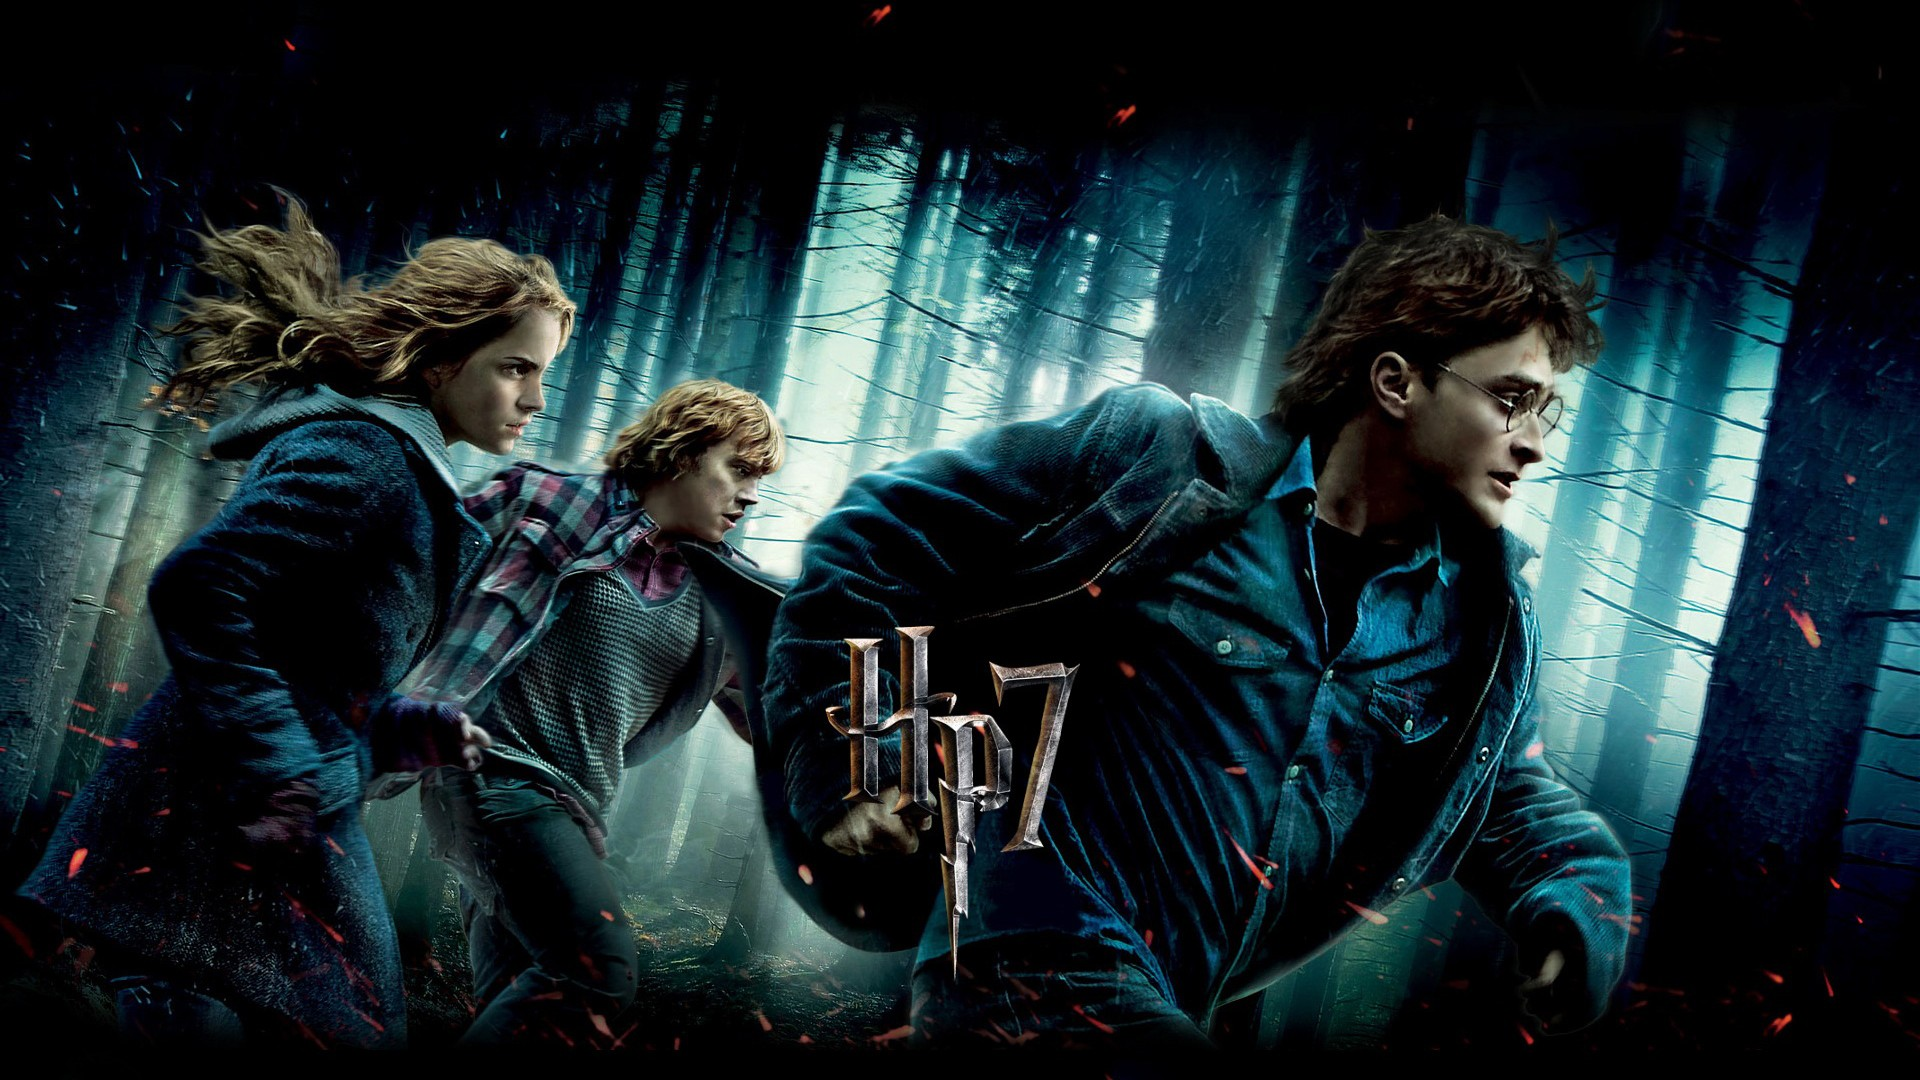 fonds d'écran harry potter : tous les wallpapers harry potter